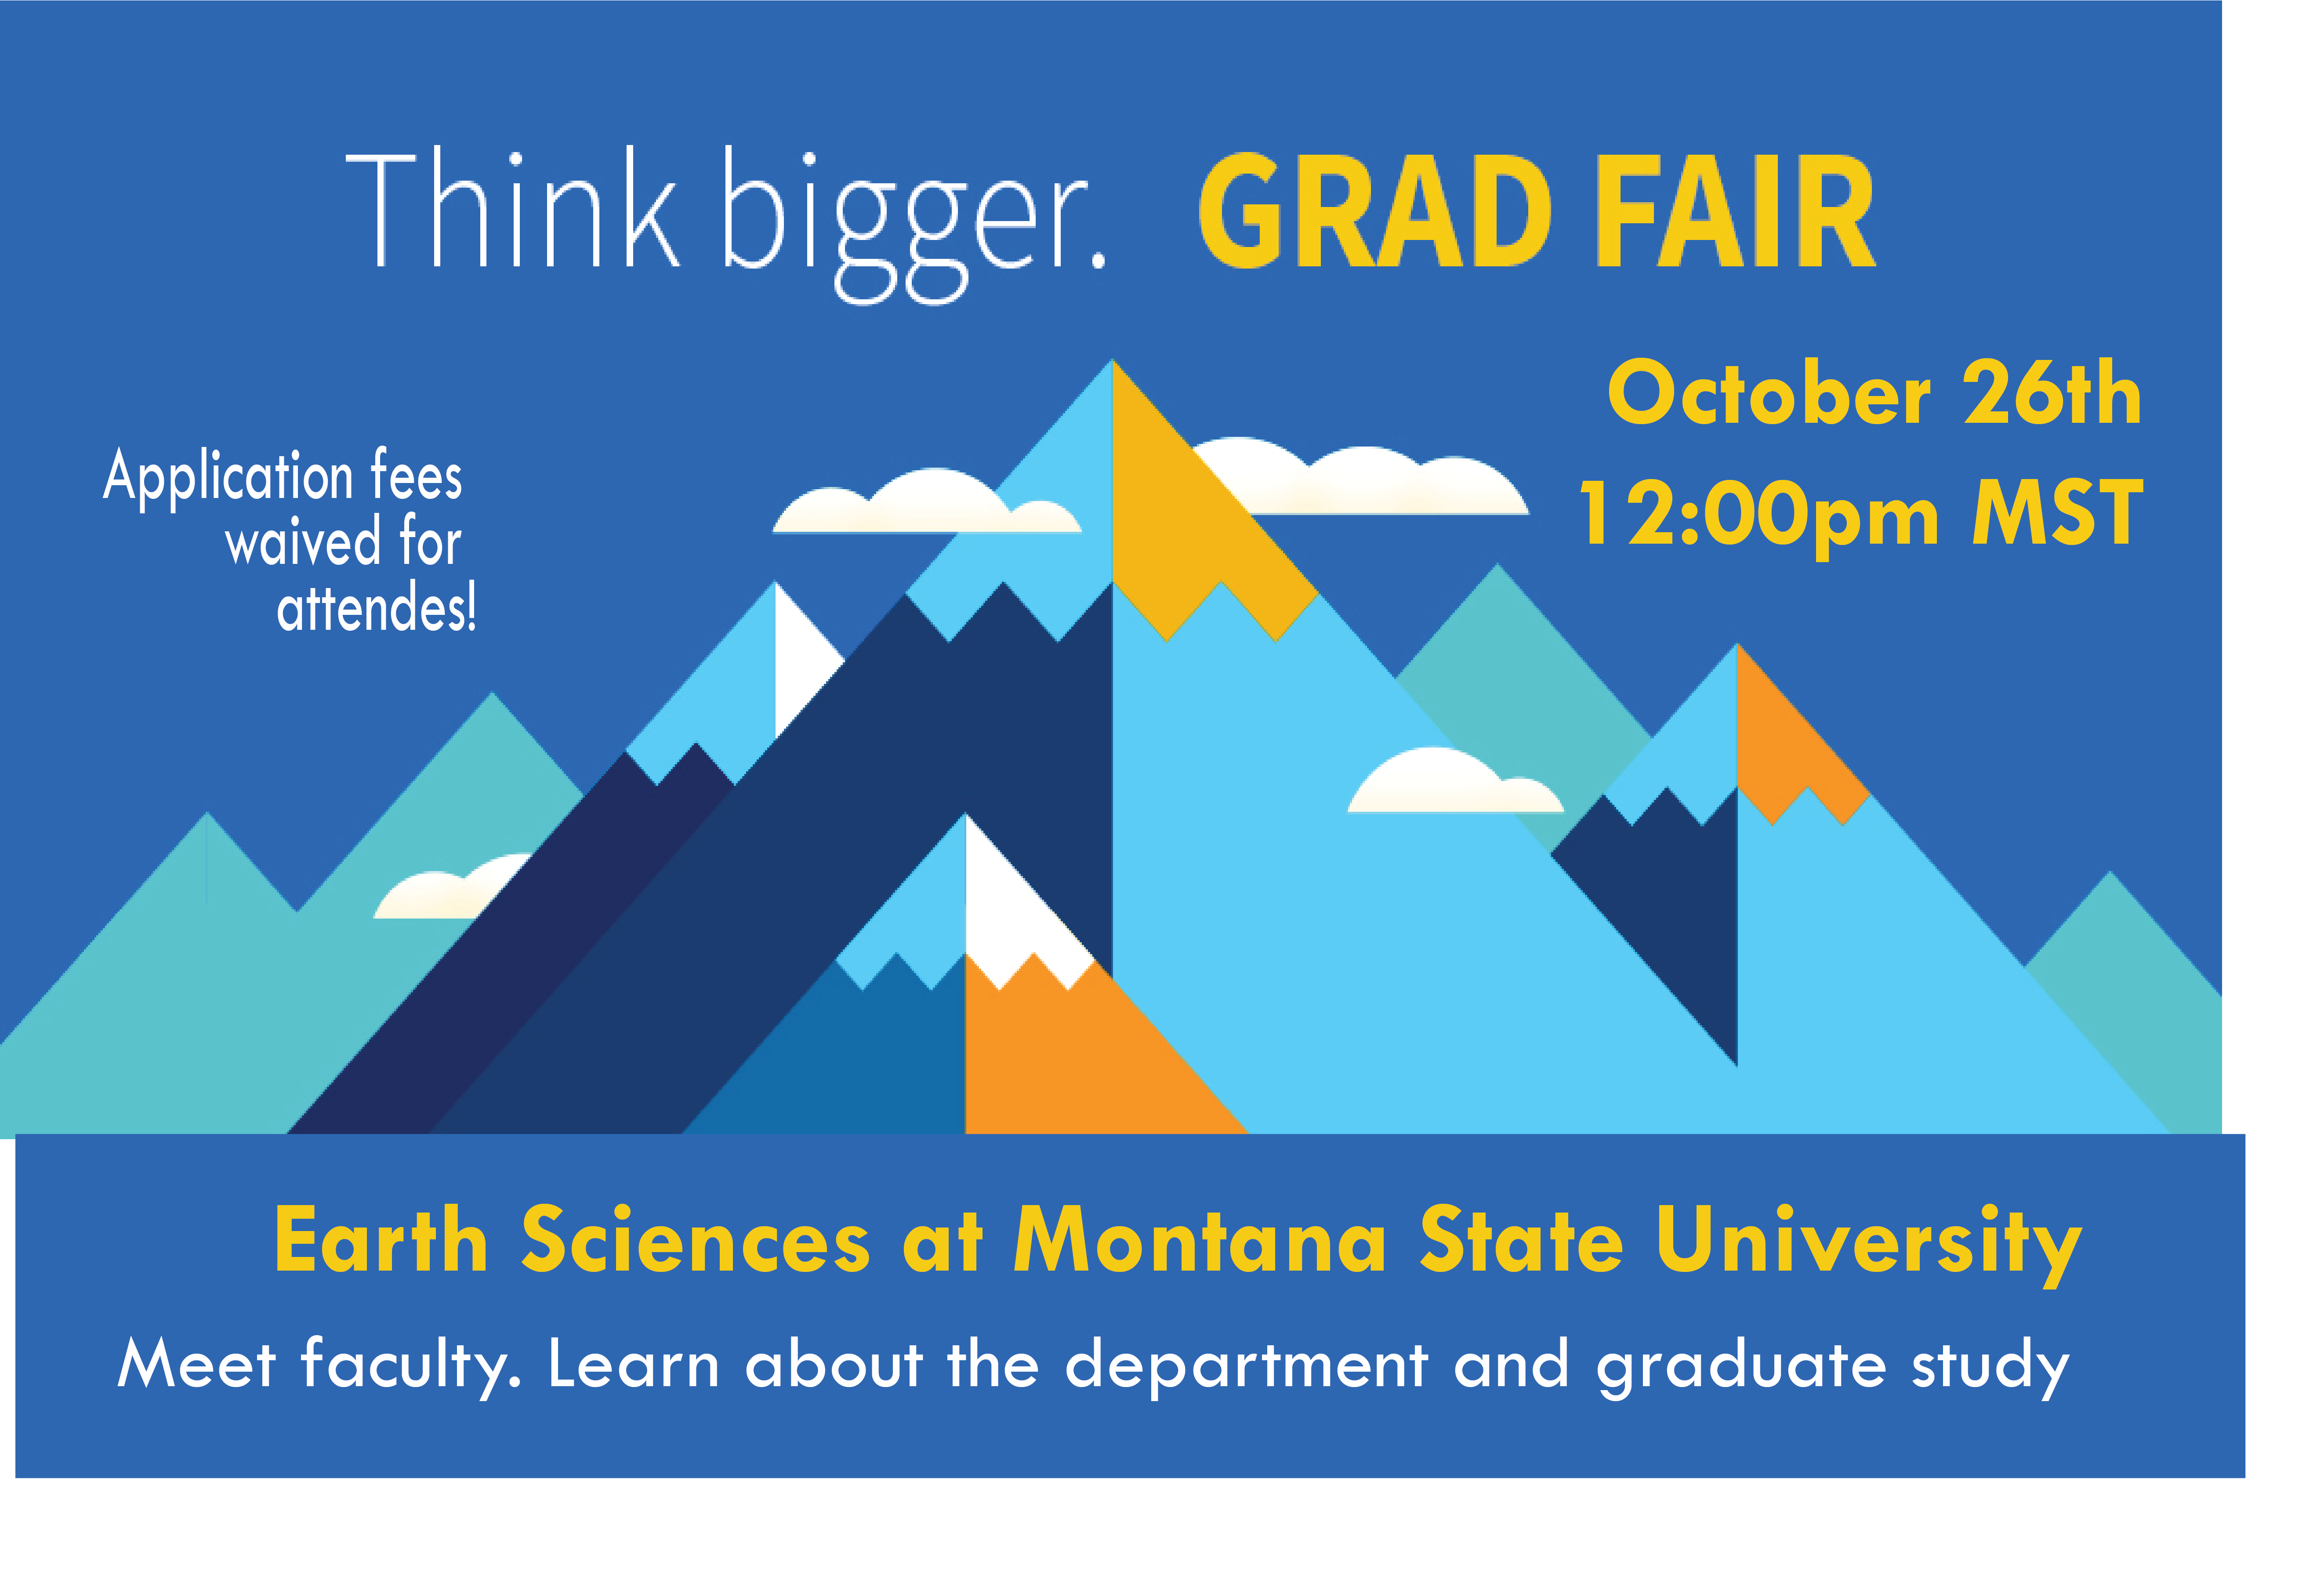 Grad Fair Flyer with image of Mountains